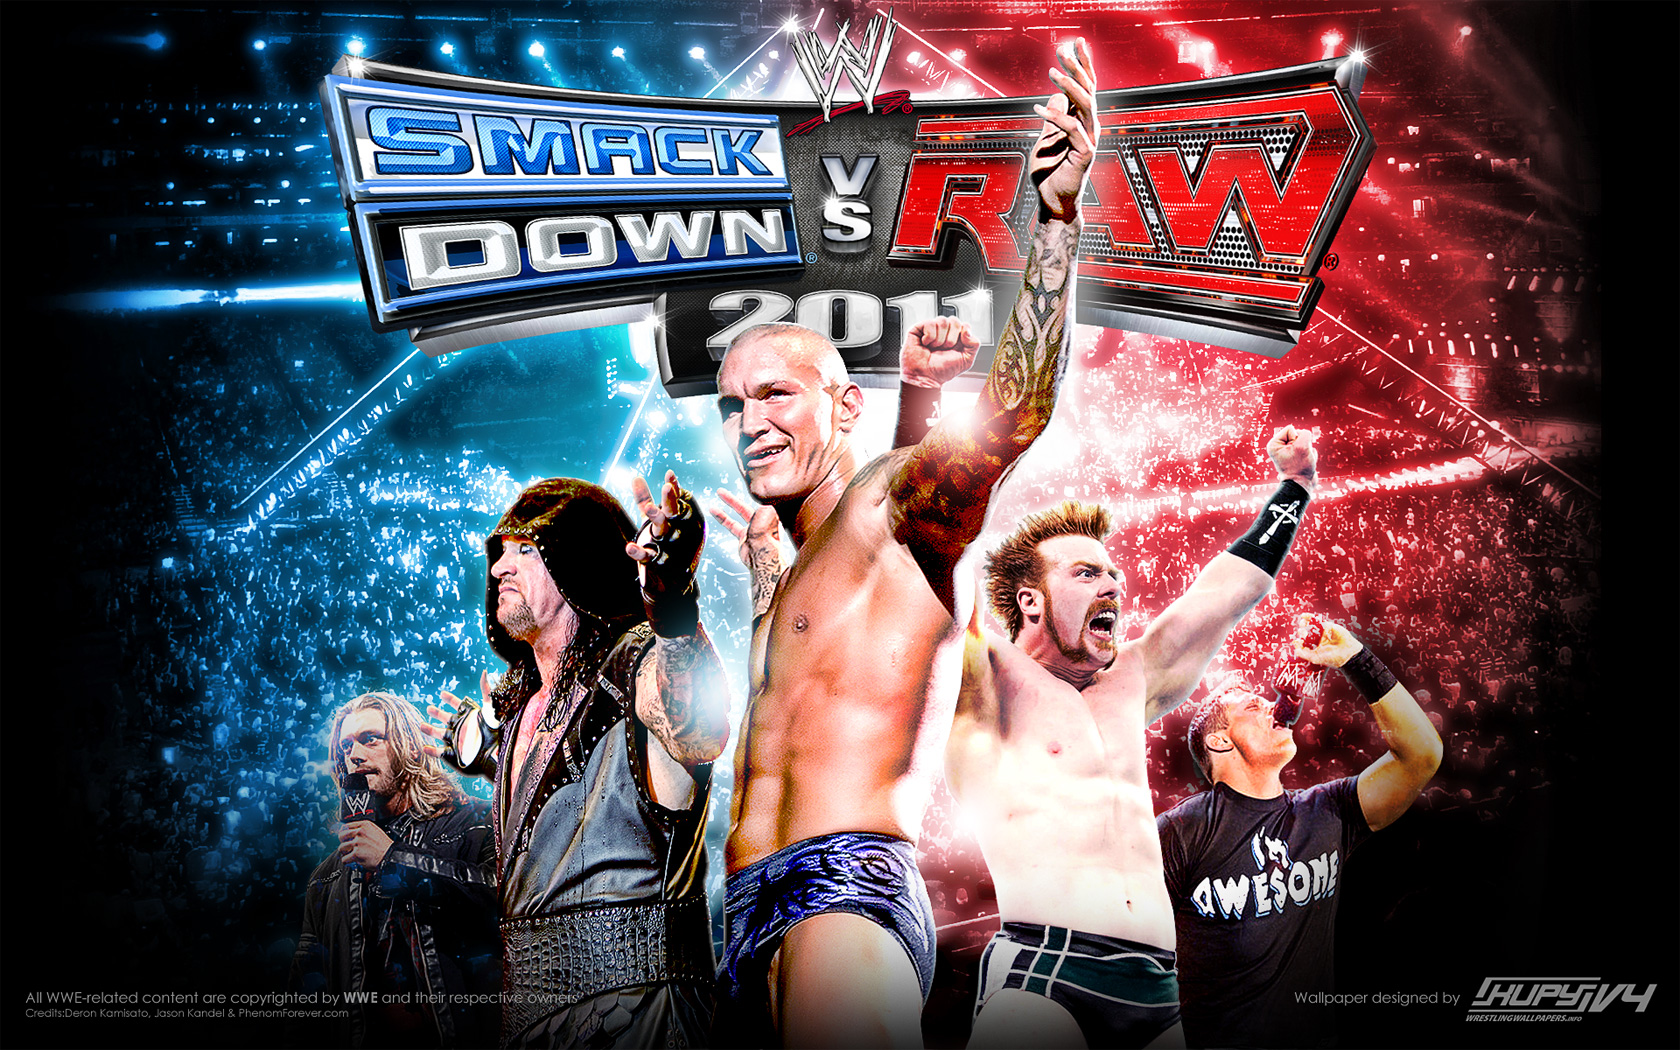 NEW WWE SmackDown Vs Raw 2011 Wallpaper